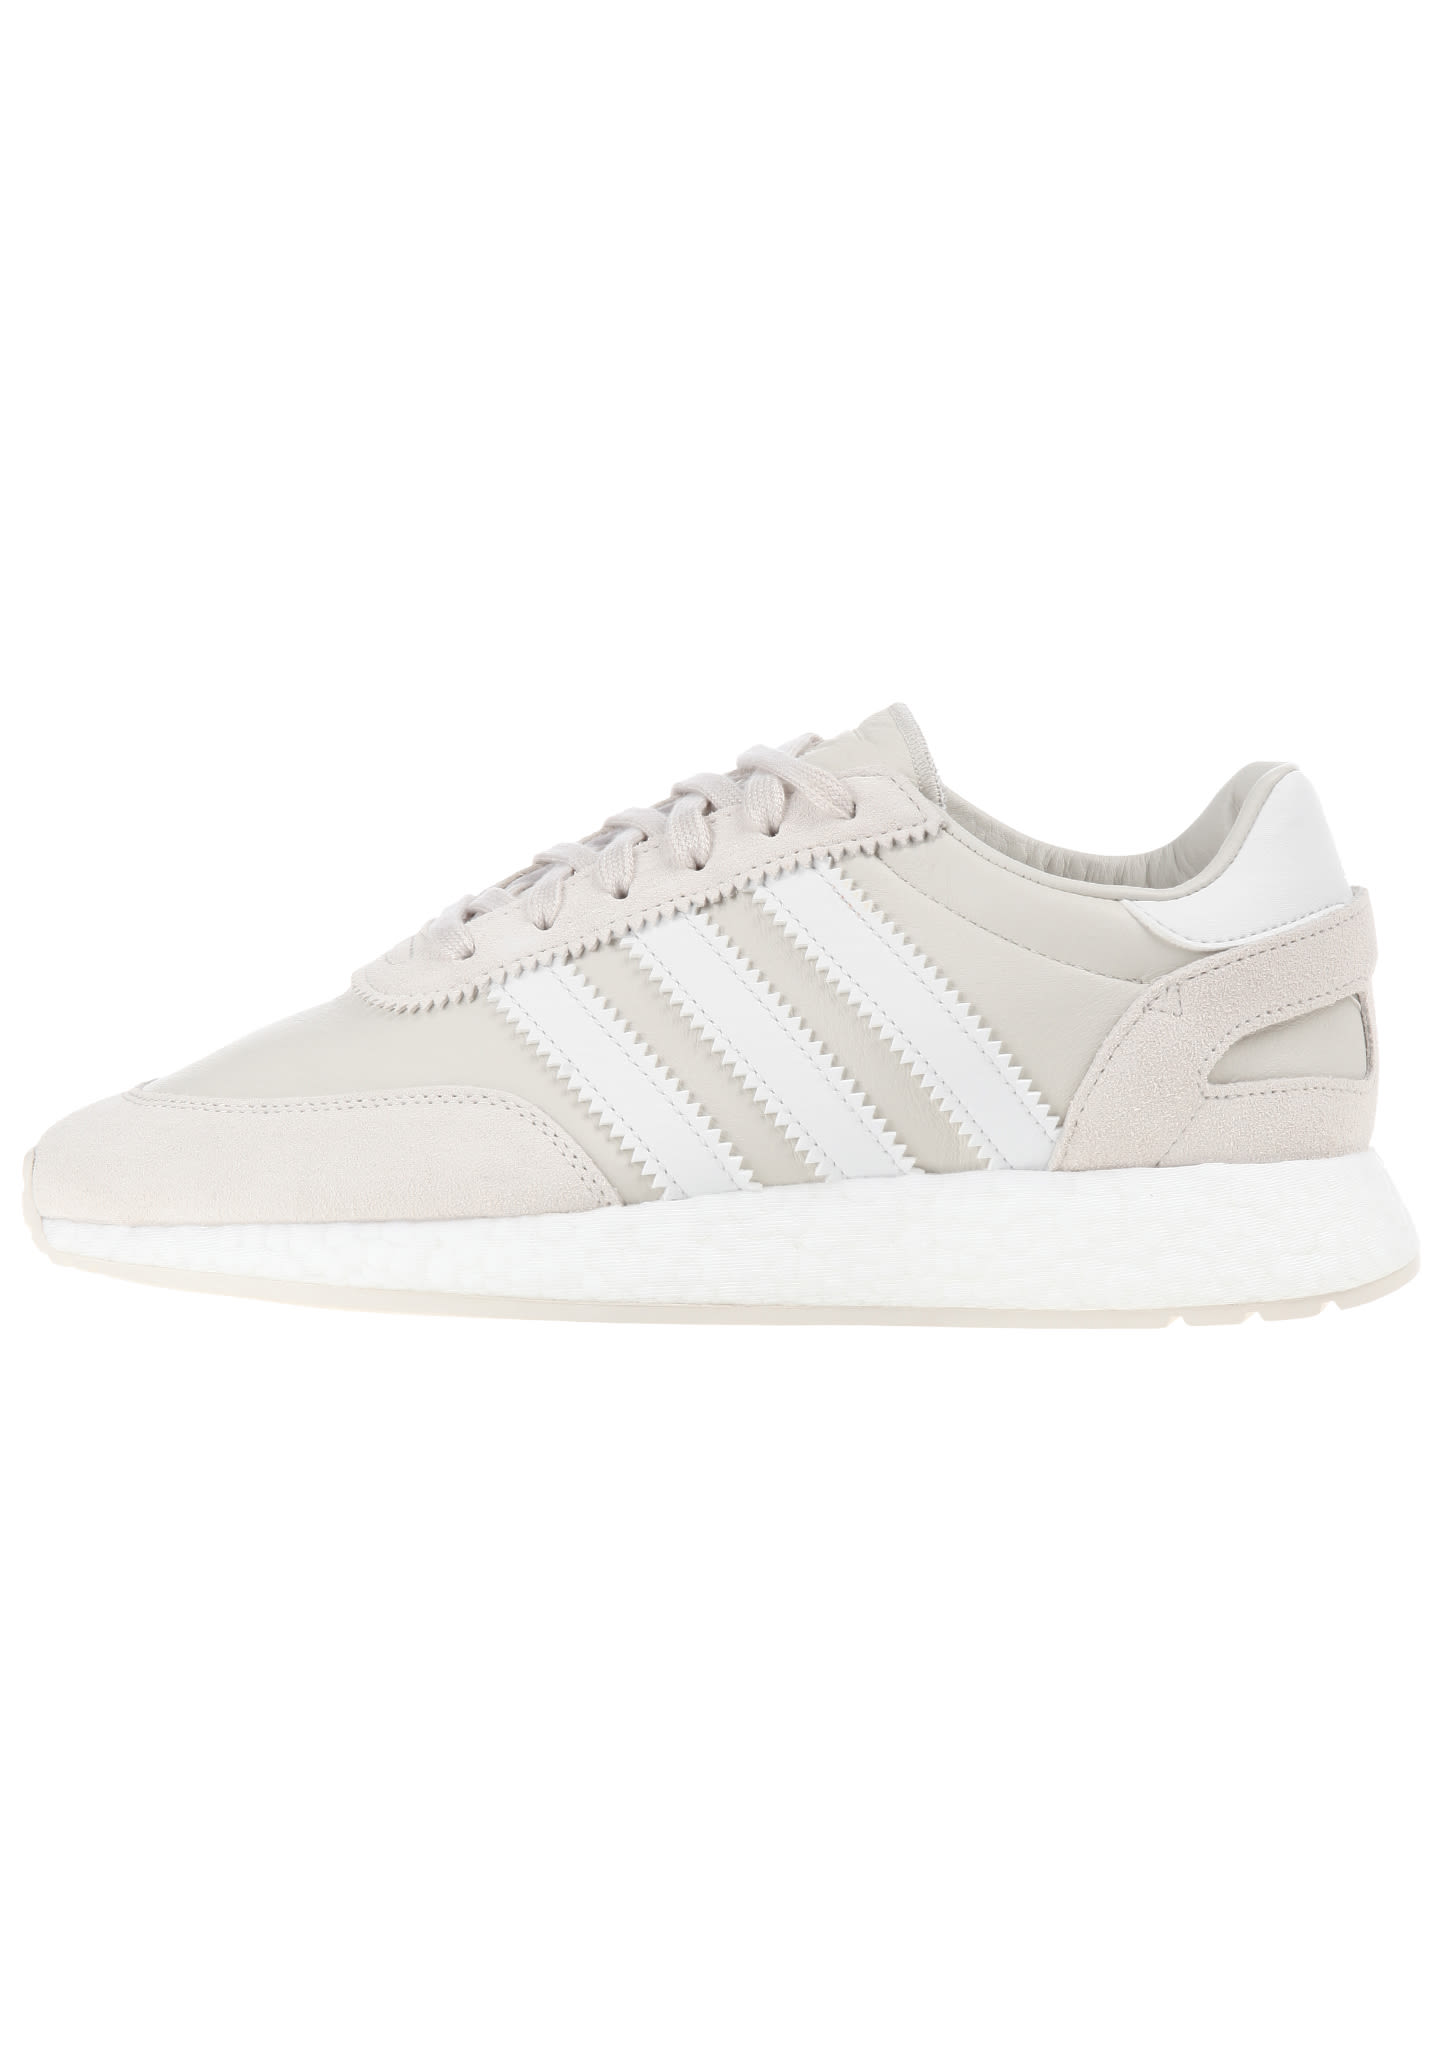 ADIDAS ORIGINALS I-5923 - Sneakers for Men - Beige